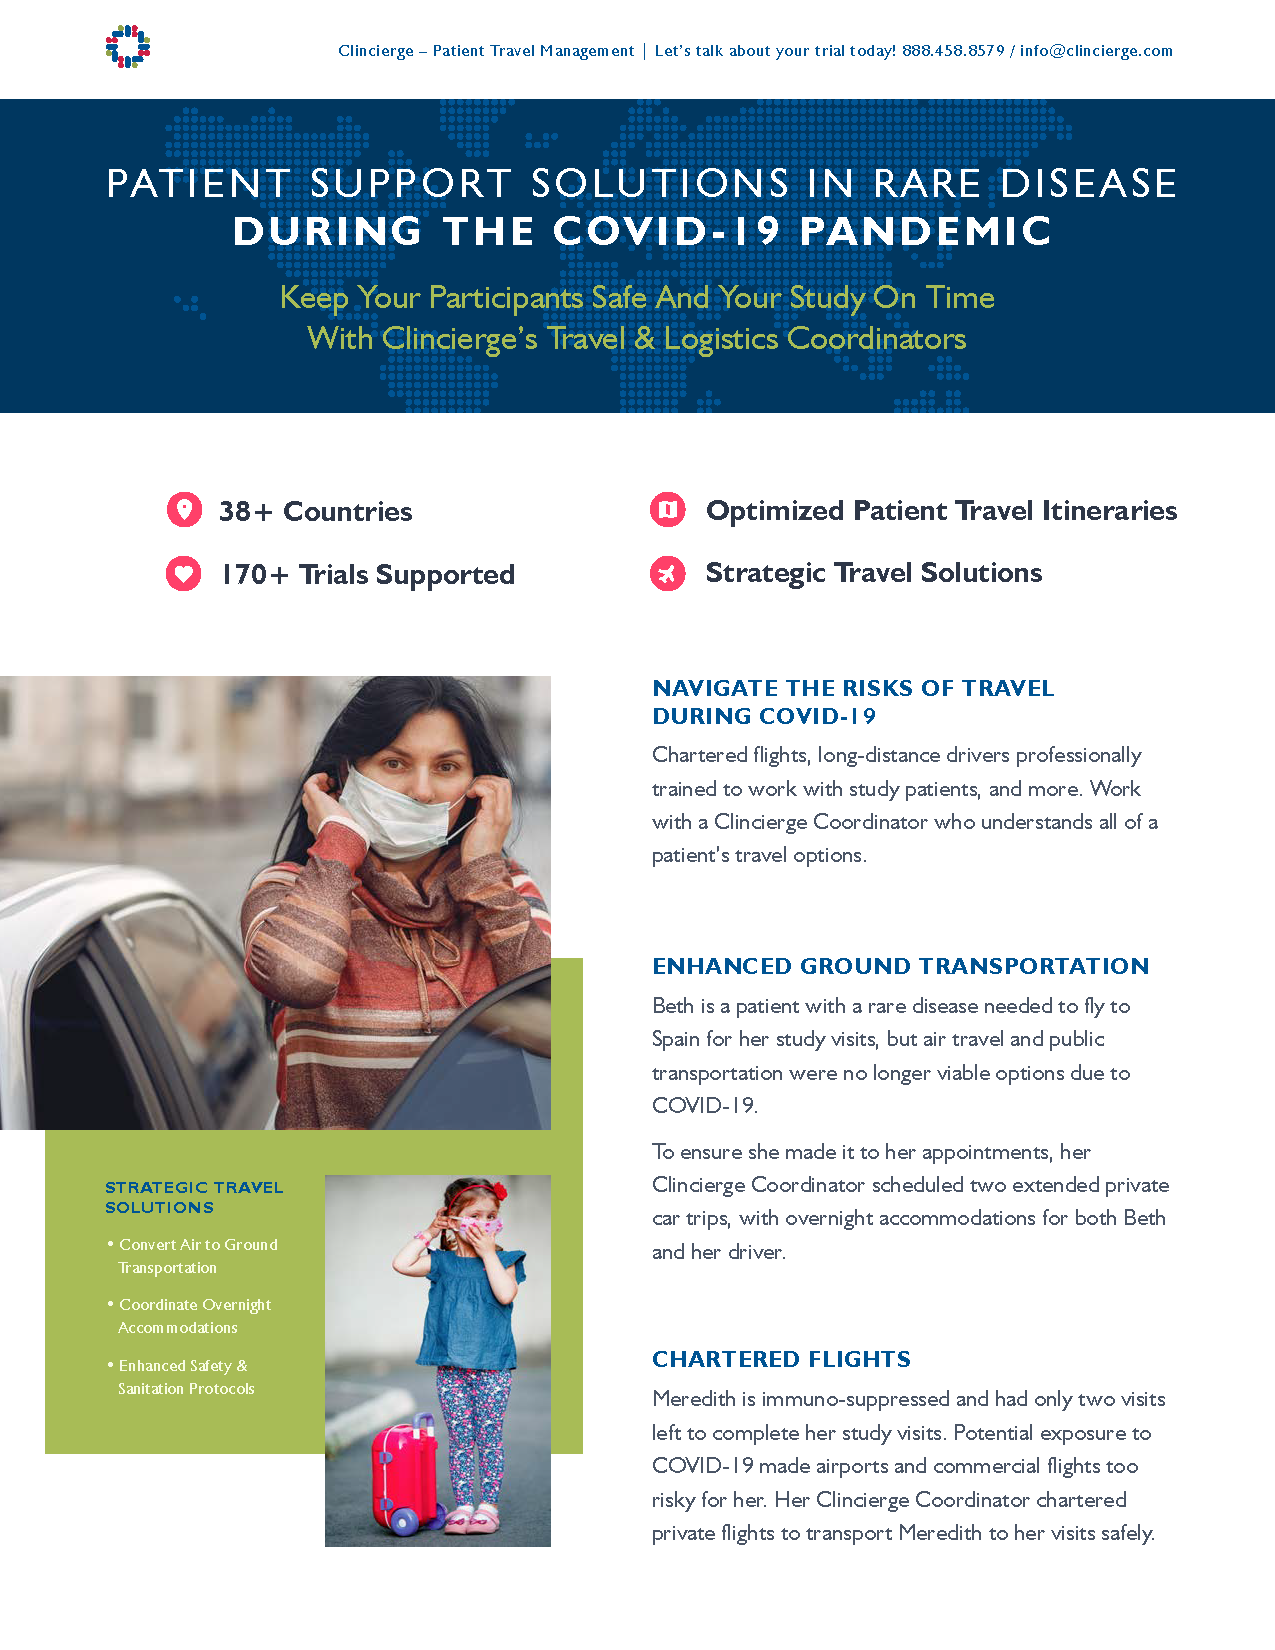 Patient Support Solutions in Rare Disease During the COVID-19 Pandemic